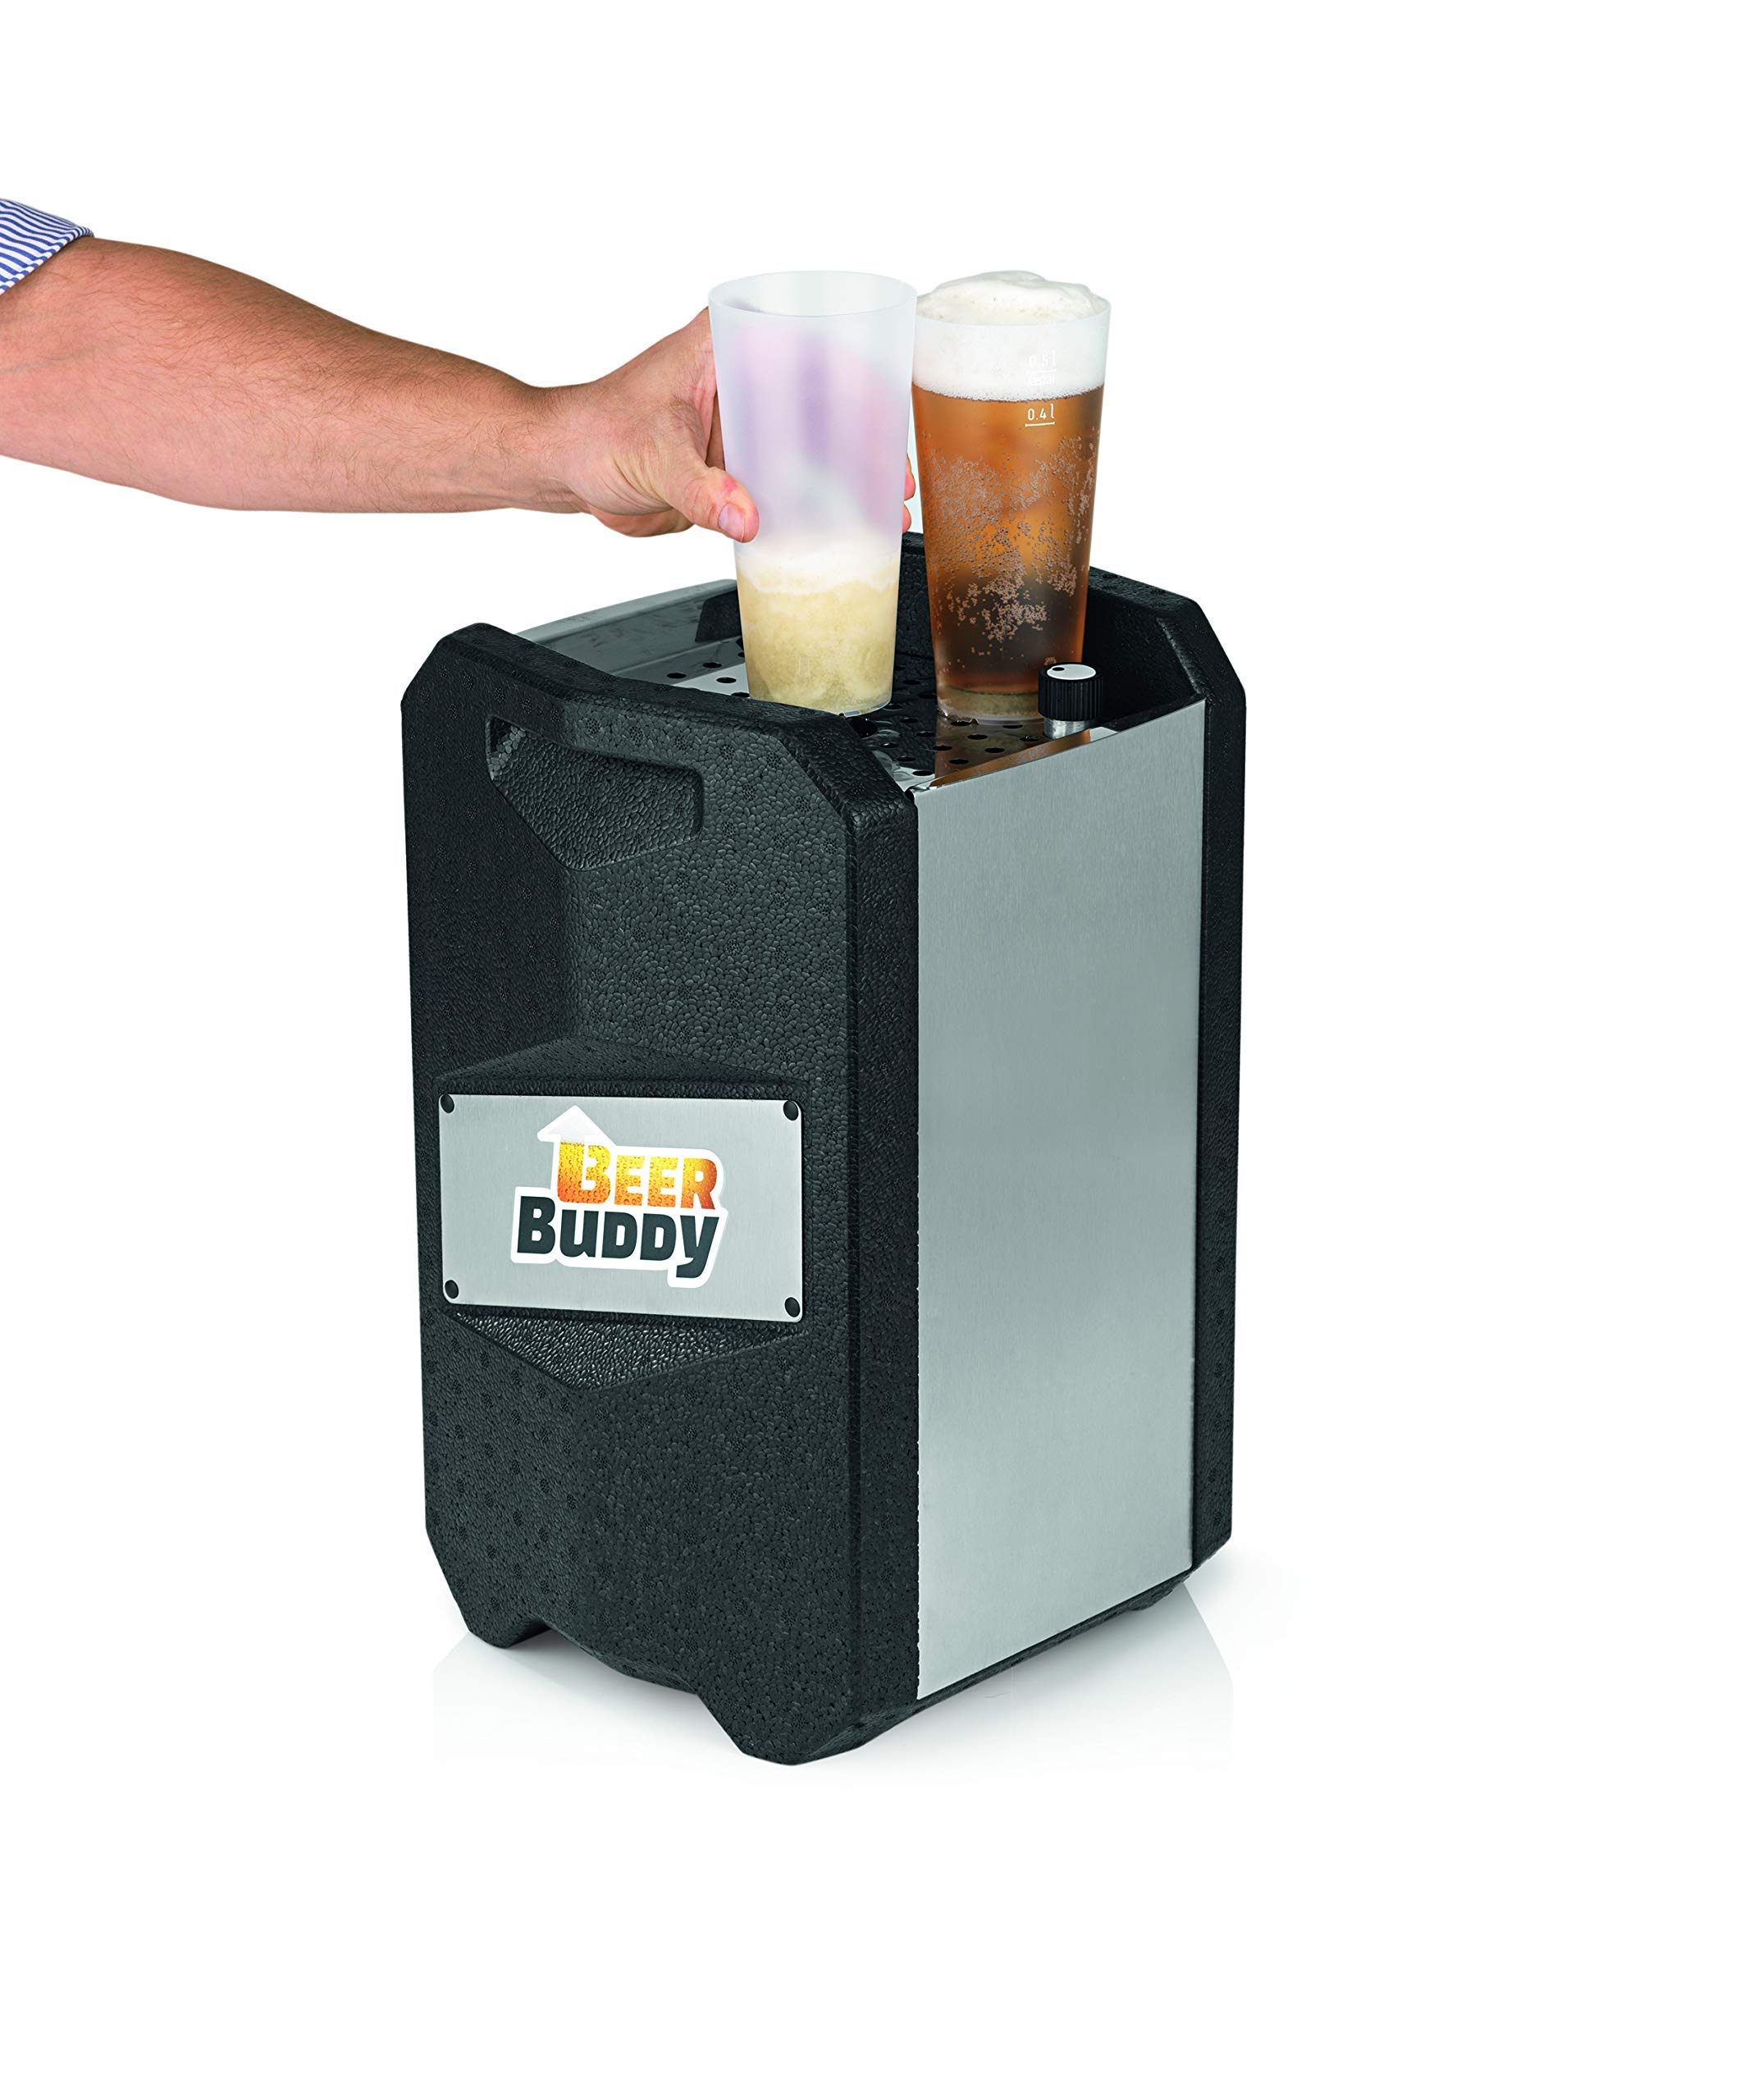 81c1W5DRYJL - Beer Buddy Version 2.0 latest version. Bottoms Up Beer Tap for 5 Litre Party Barrels